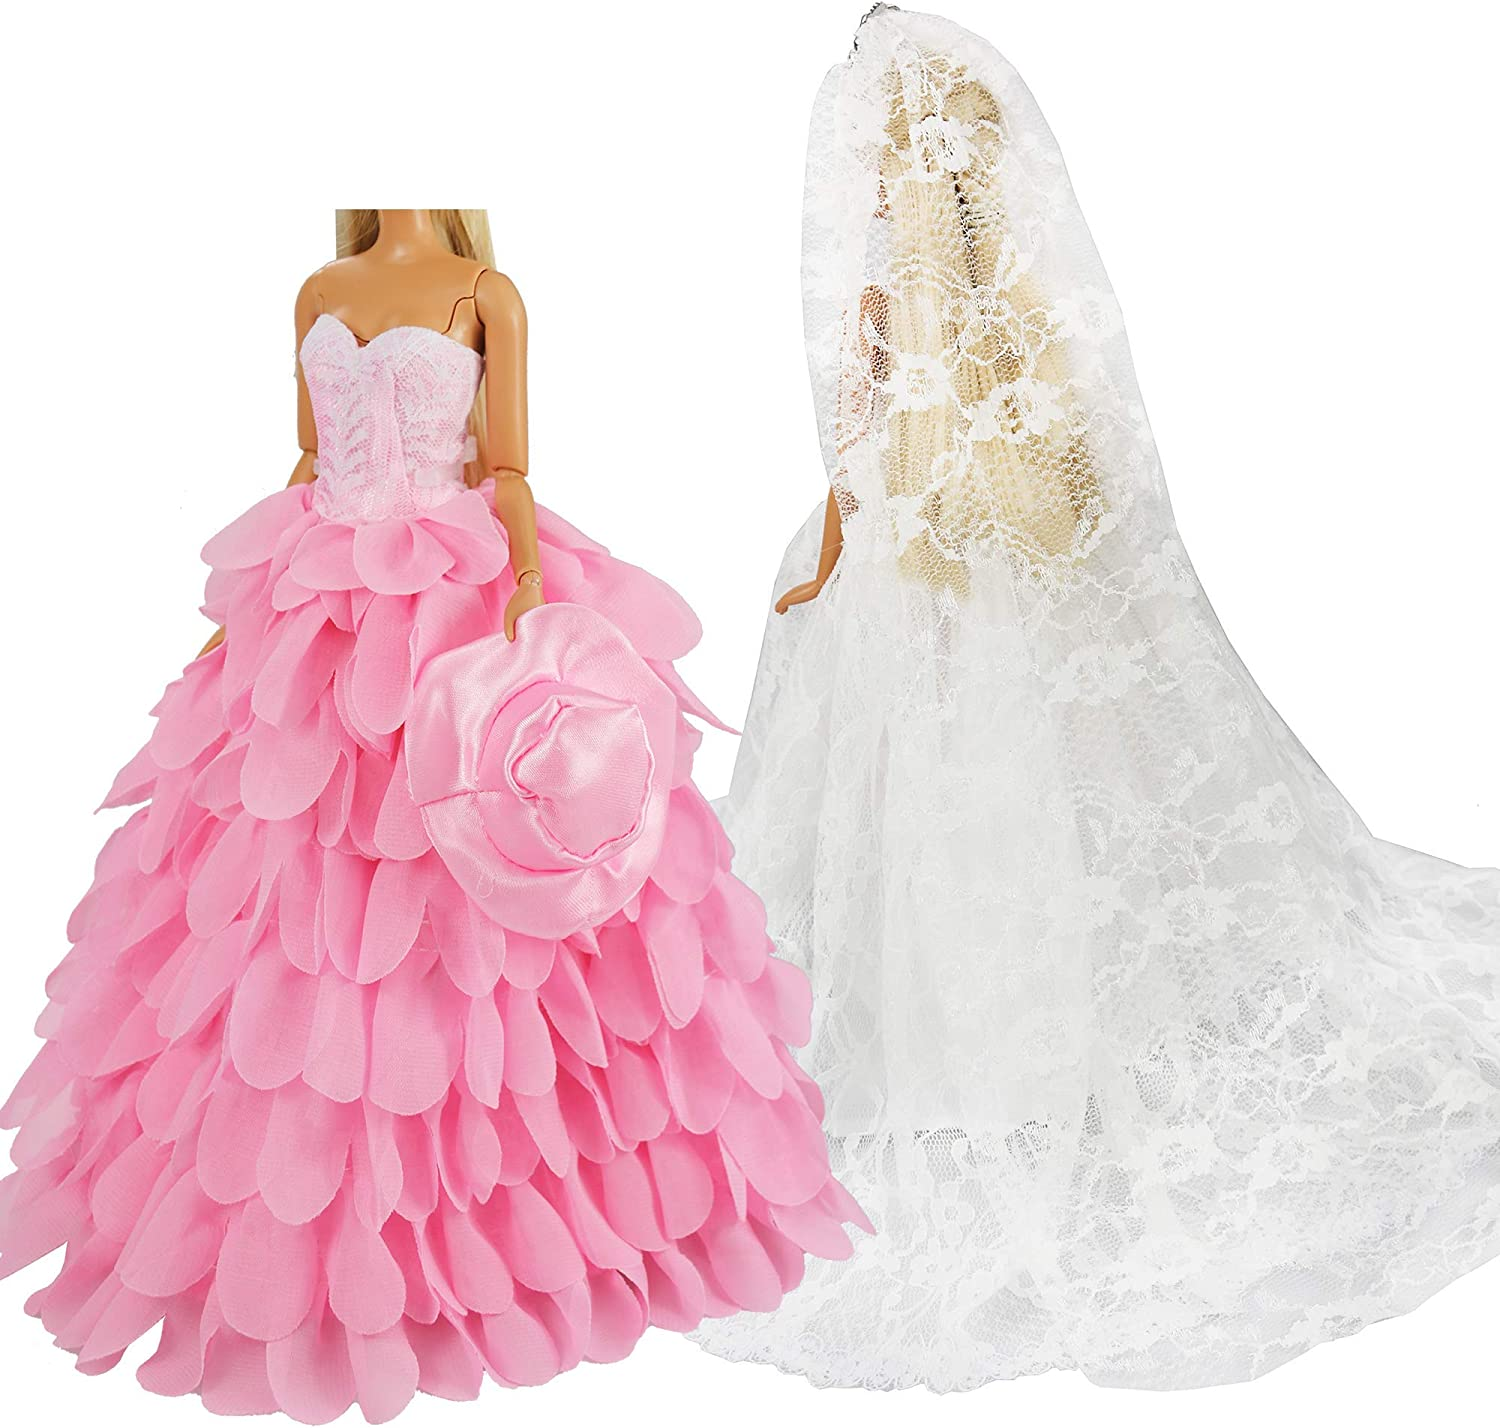 New Barbie clothes outfit princess wedding  ball gown dress pink lace